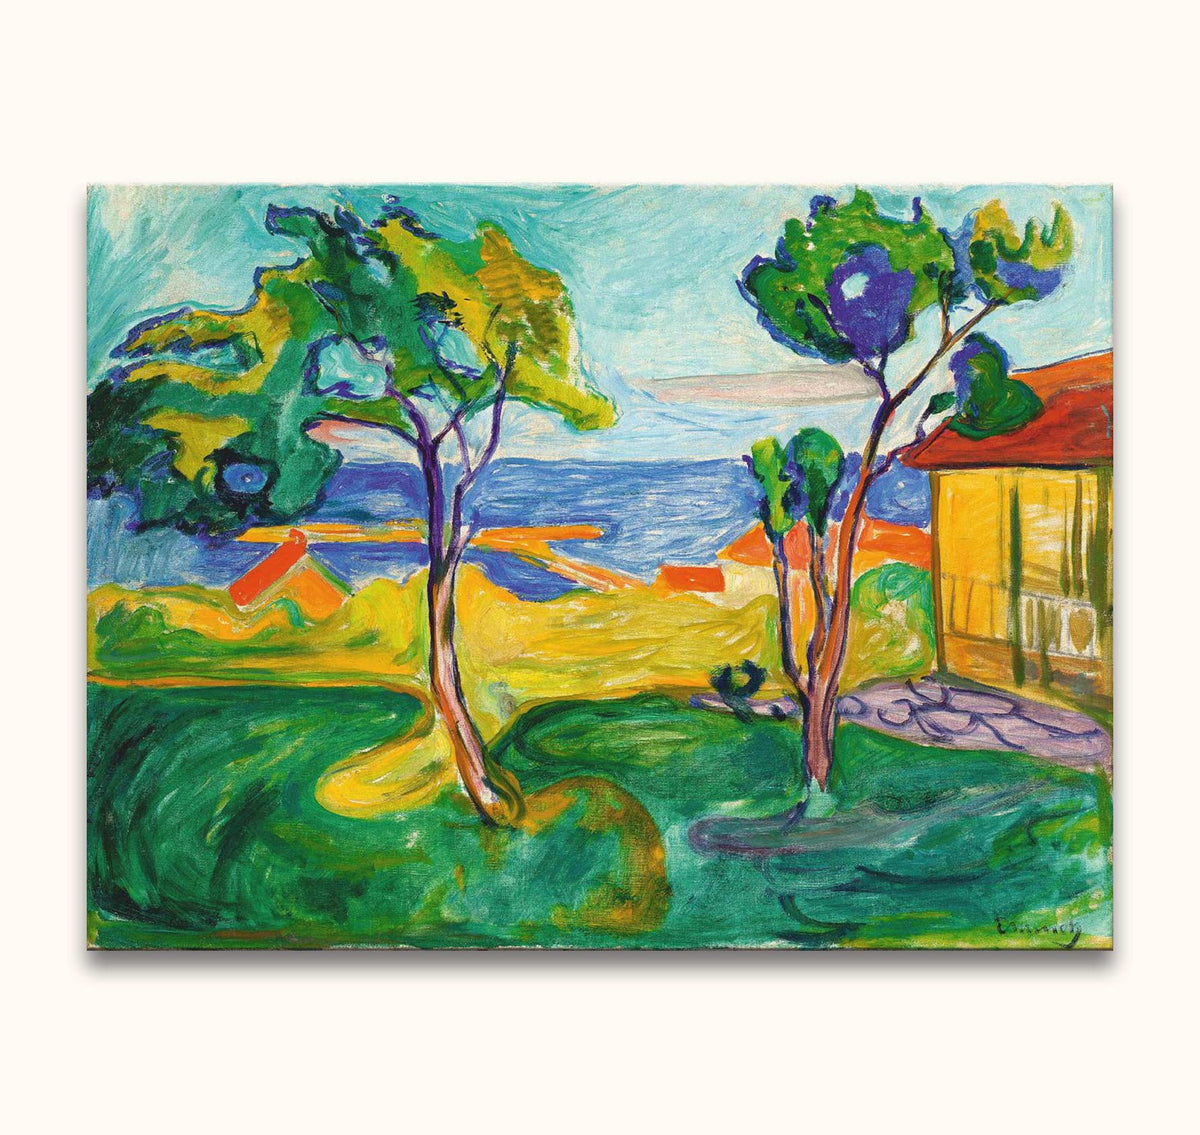 Edvard Munch - The Garden in Asgardstrand